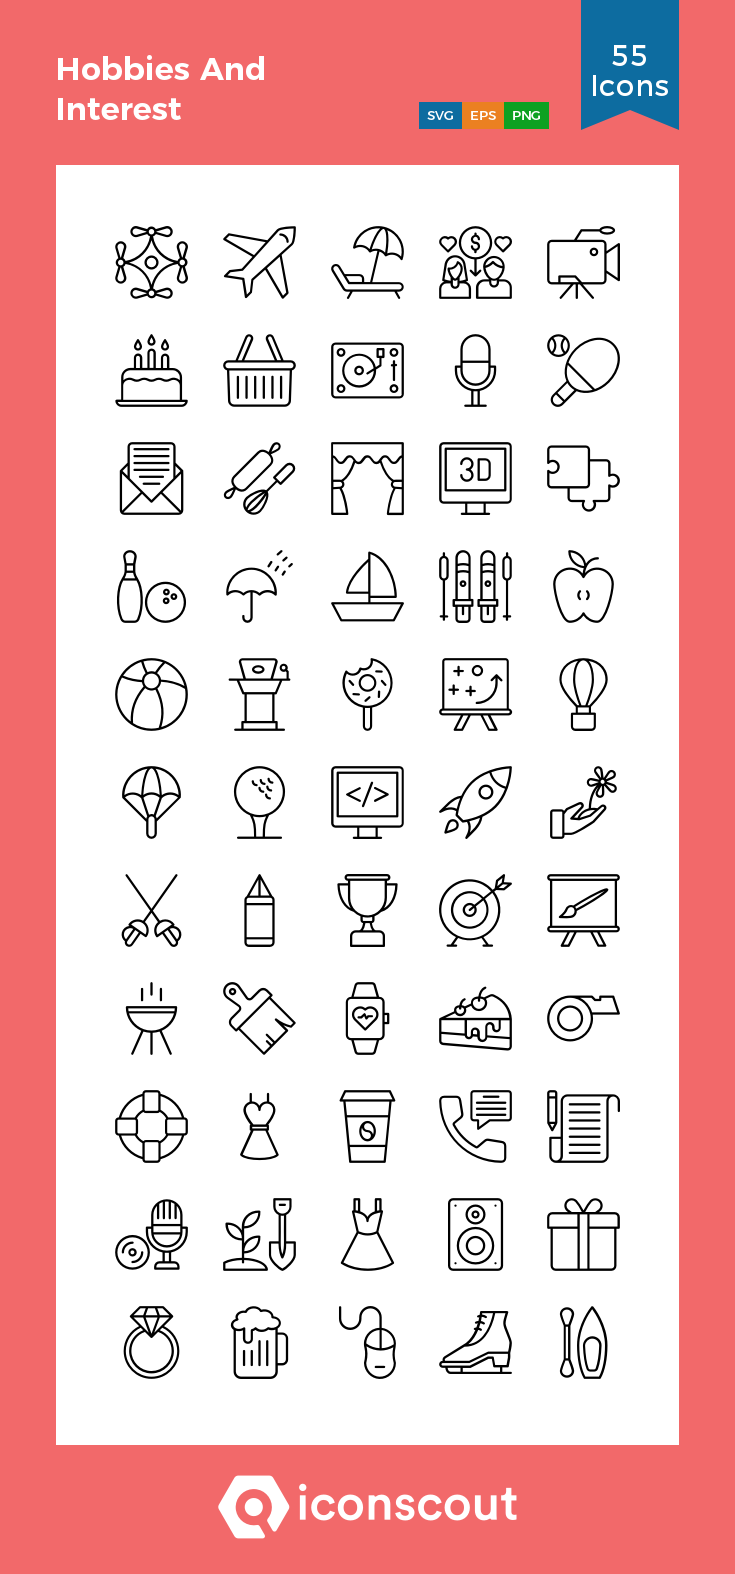 Download Hobbies And Interest Icon Pack Available In Svg Png Eps Ai Icon Fonts Line Icon Icon Pack Hobbies And Interests